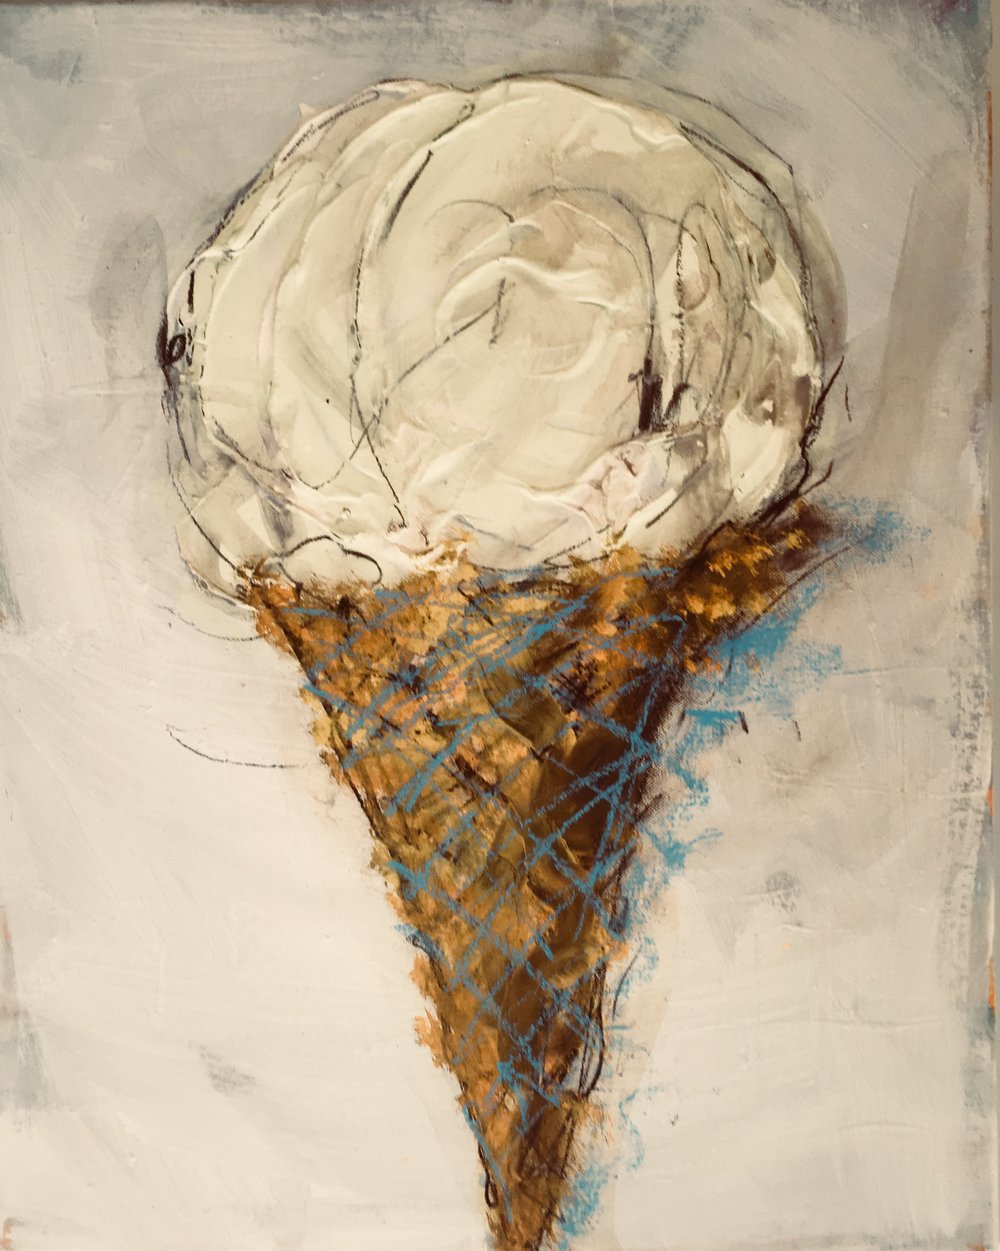 Series of 48 ice cream cones, various original canvas and reproductions for The Kettle Gallery show, Deep Ellum Dallas in September all month starting Sept 13 at the Kettle on Main St. Dallas